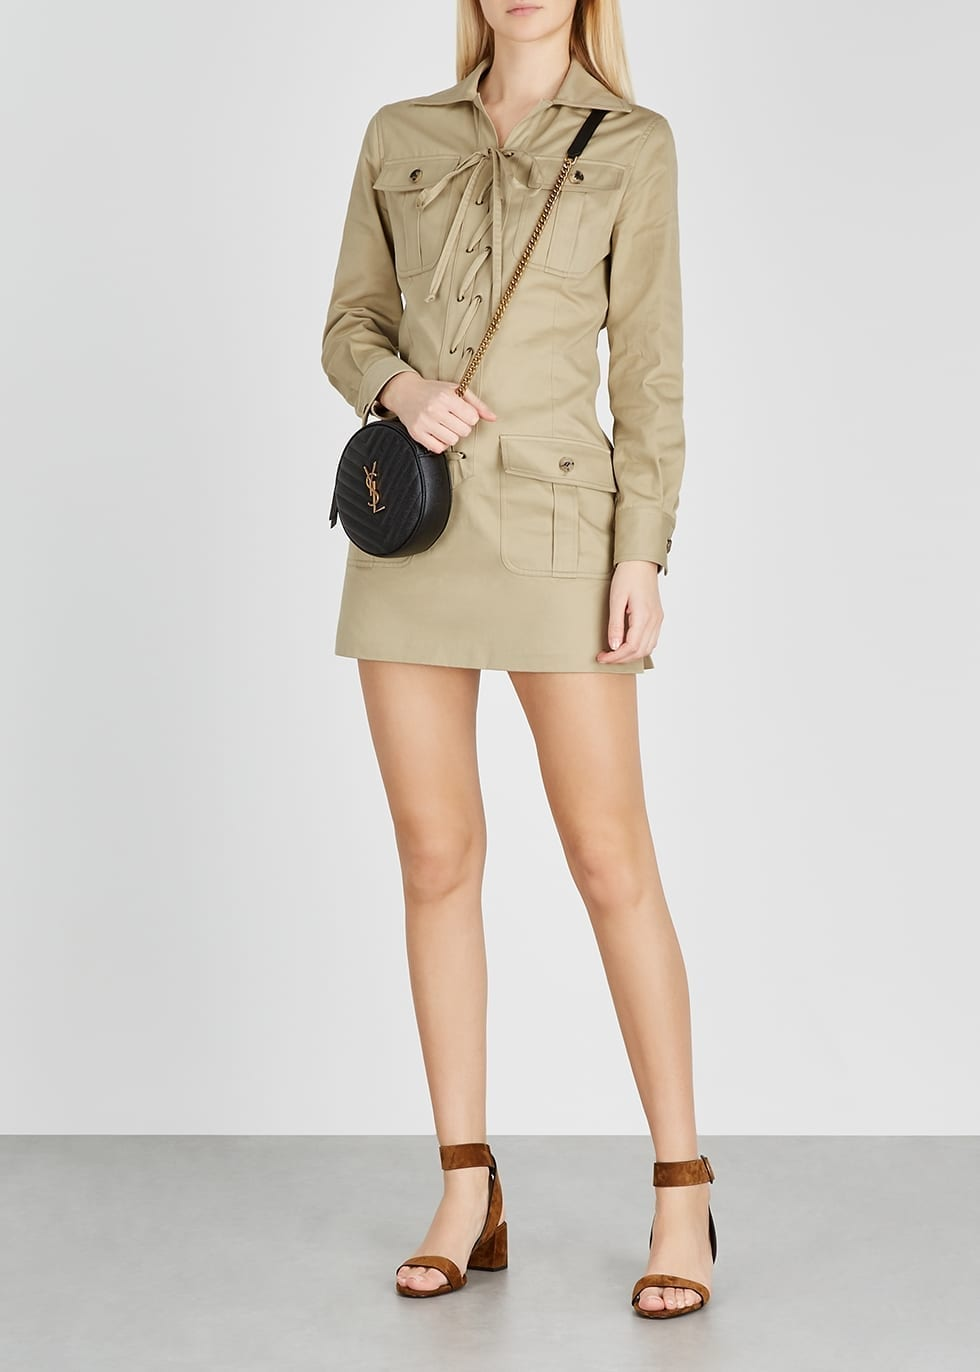 SAINT LAURENT Sand Lace-up Twill Mini Dress